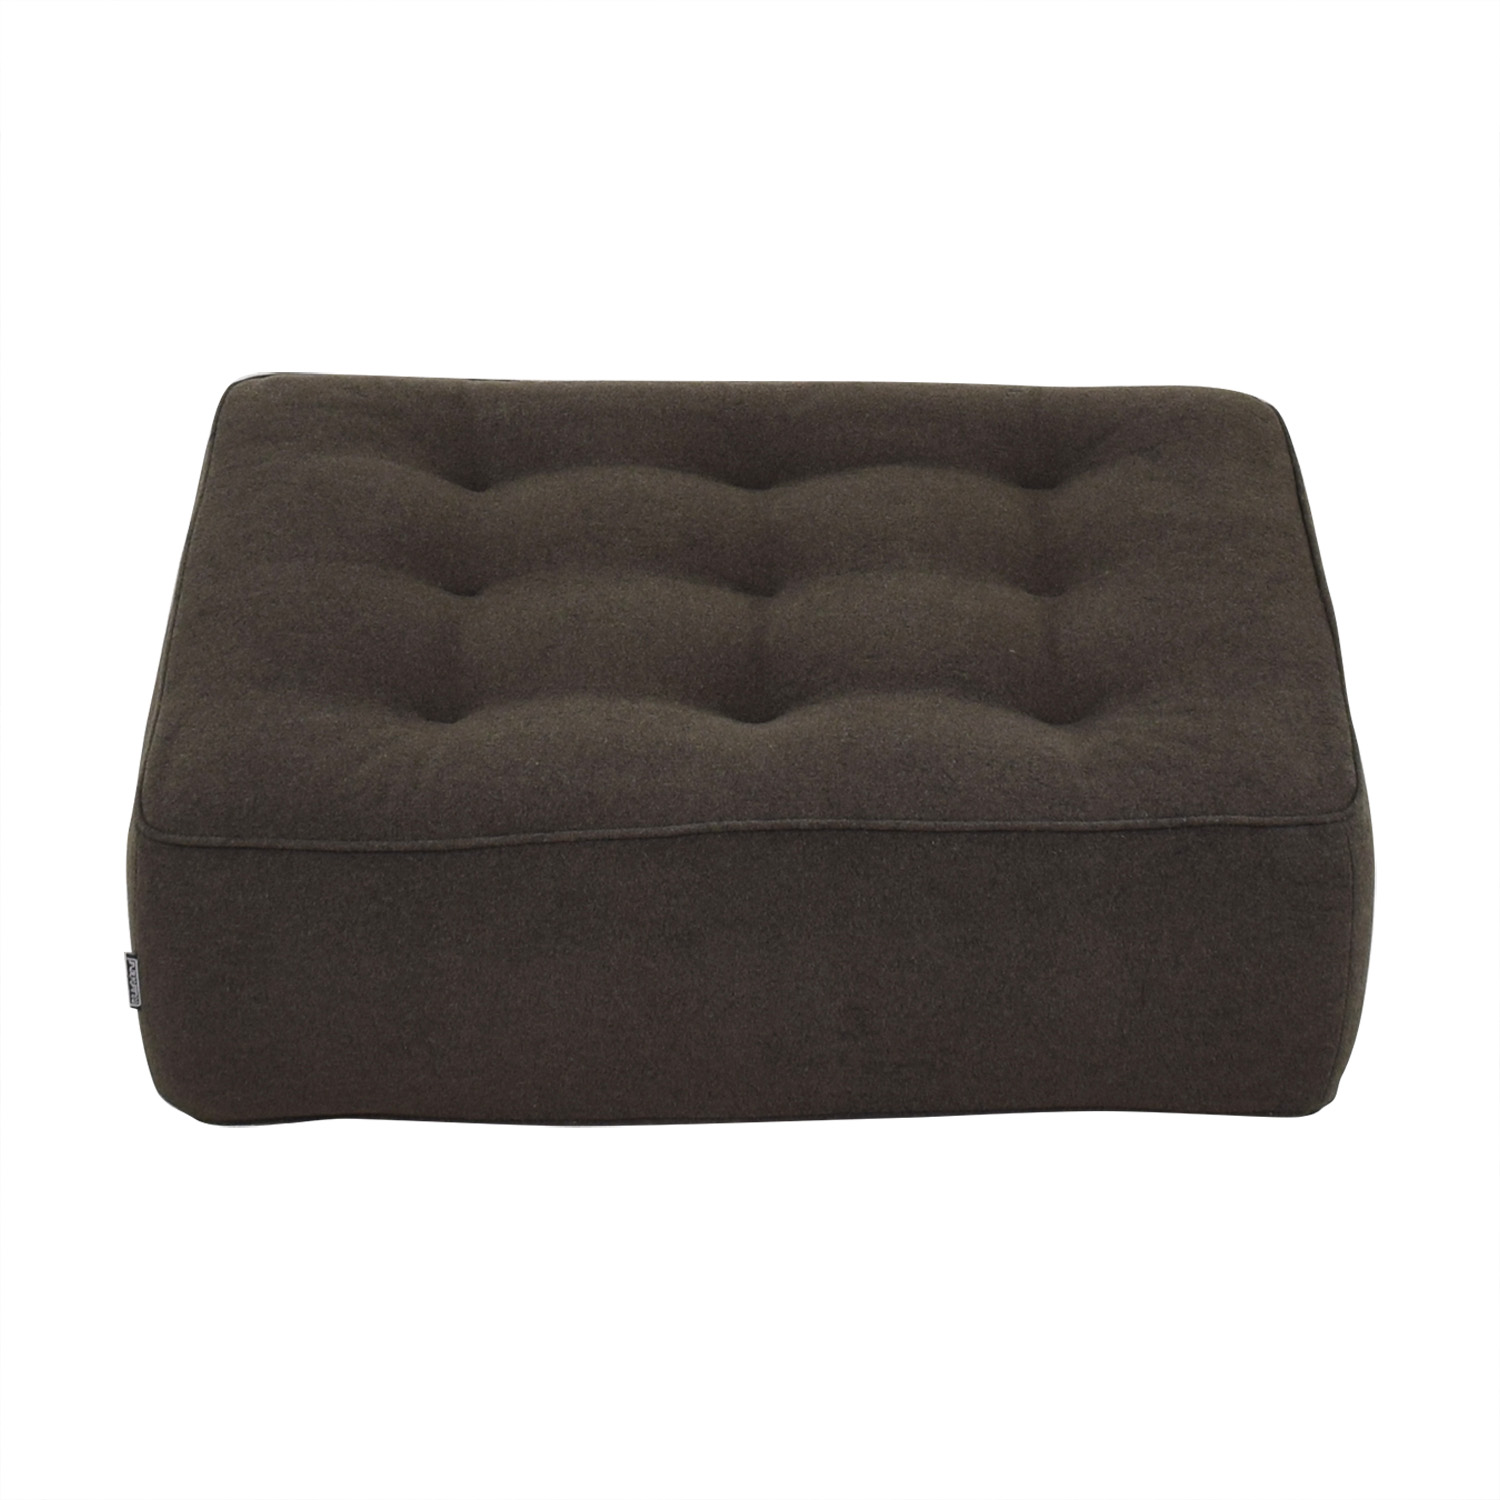 buy Flexform Wheeled Ottoman Flexform Chairs